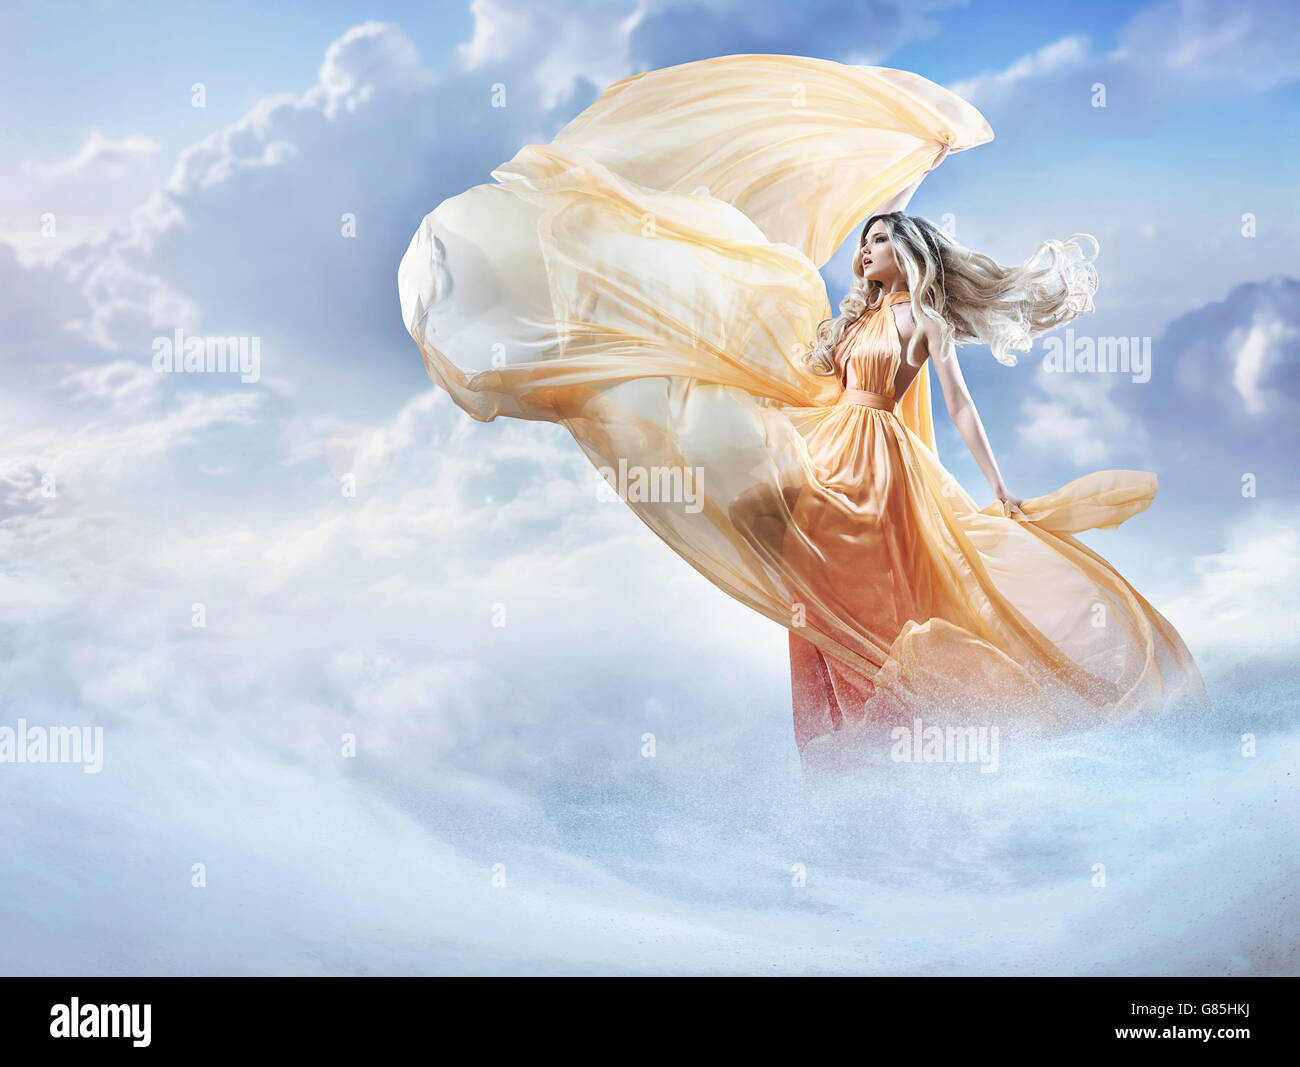 Dreamy image of a beautiful young woman in the clouds - Stock Image